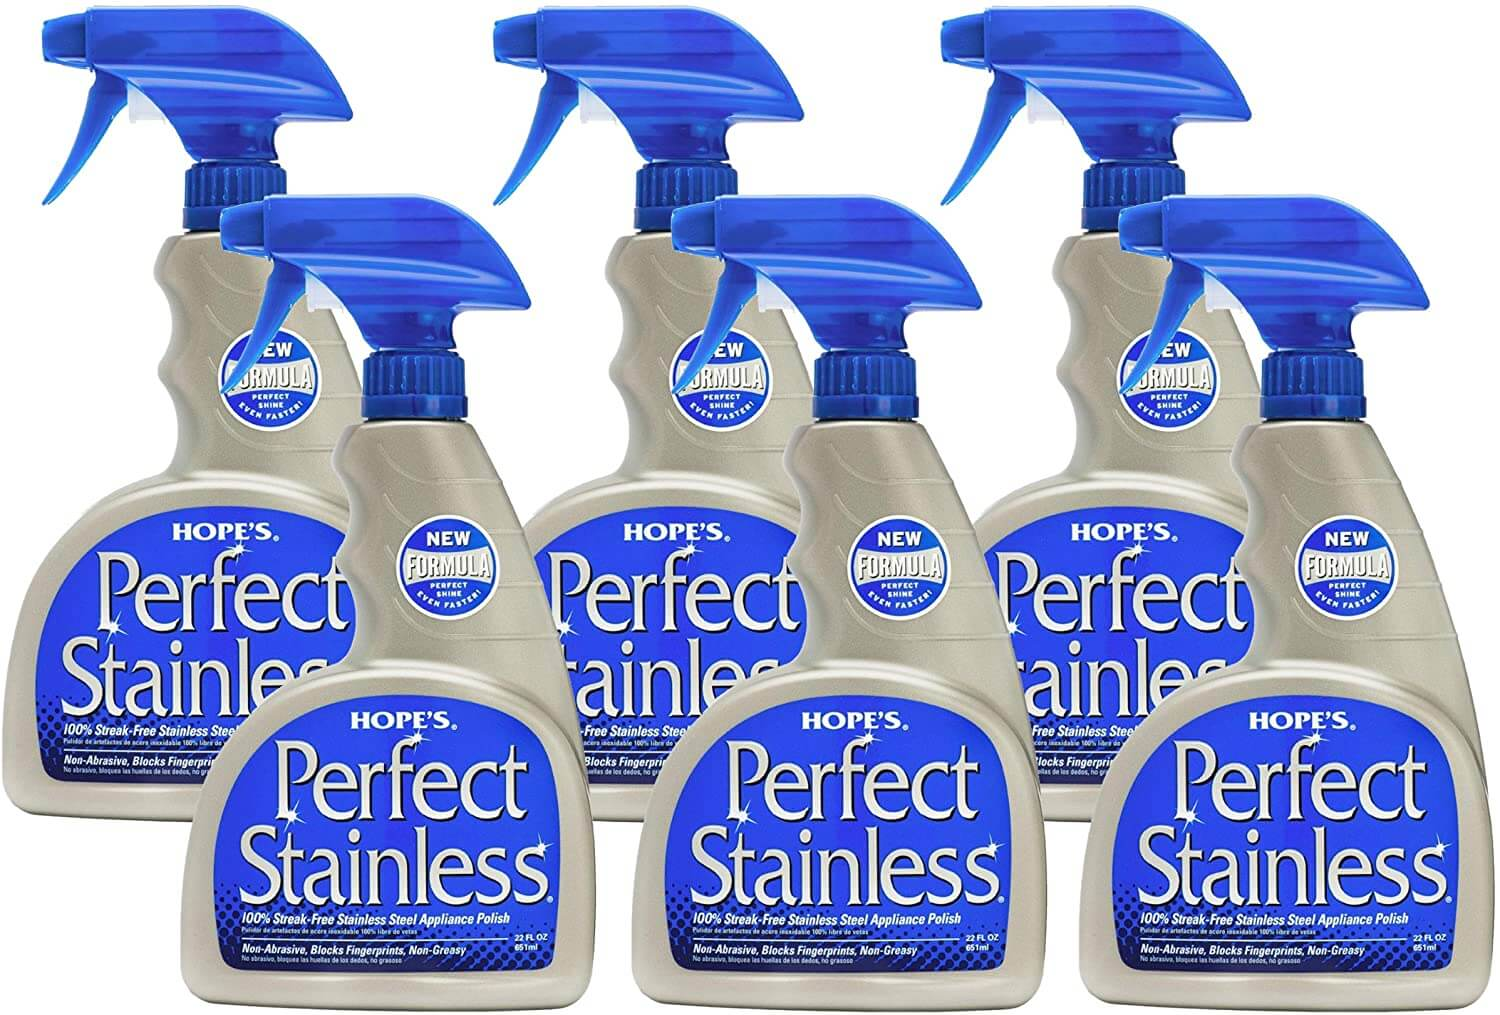 Hope's Perfect Stainless Steel Cleaner